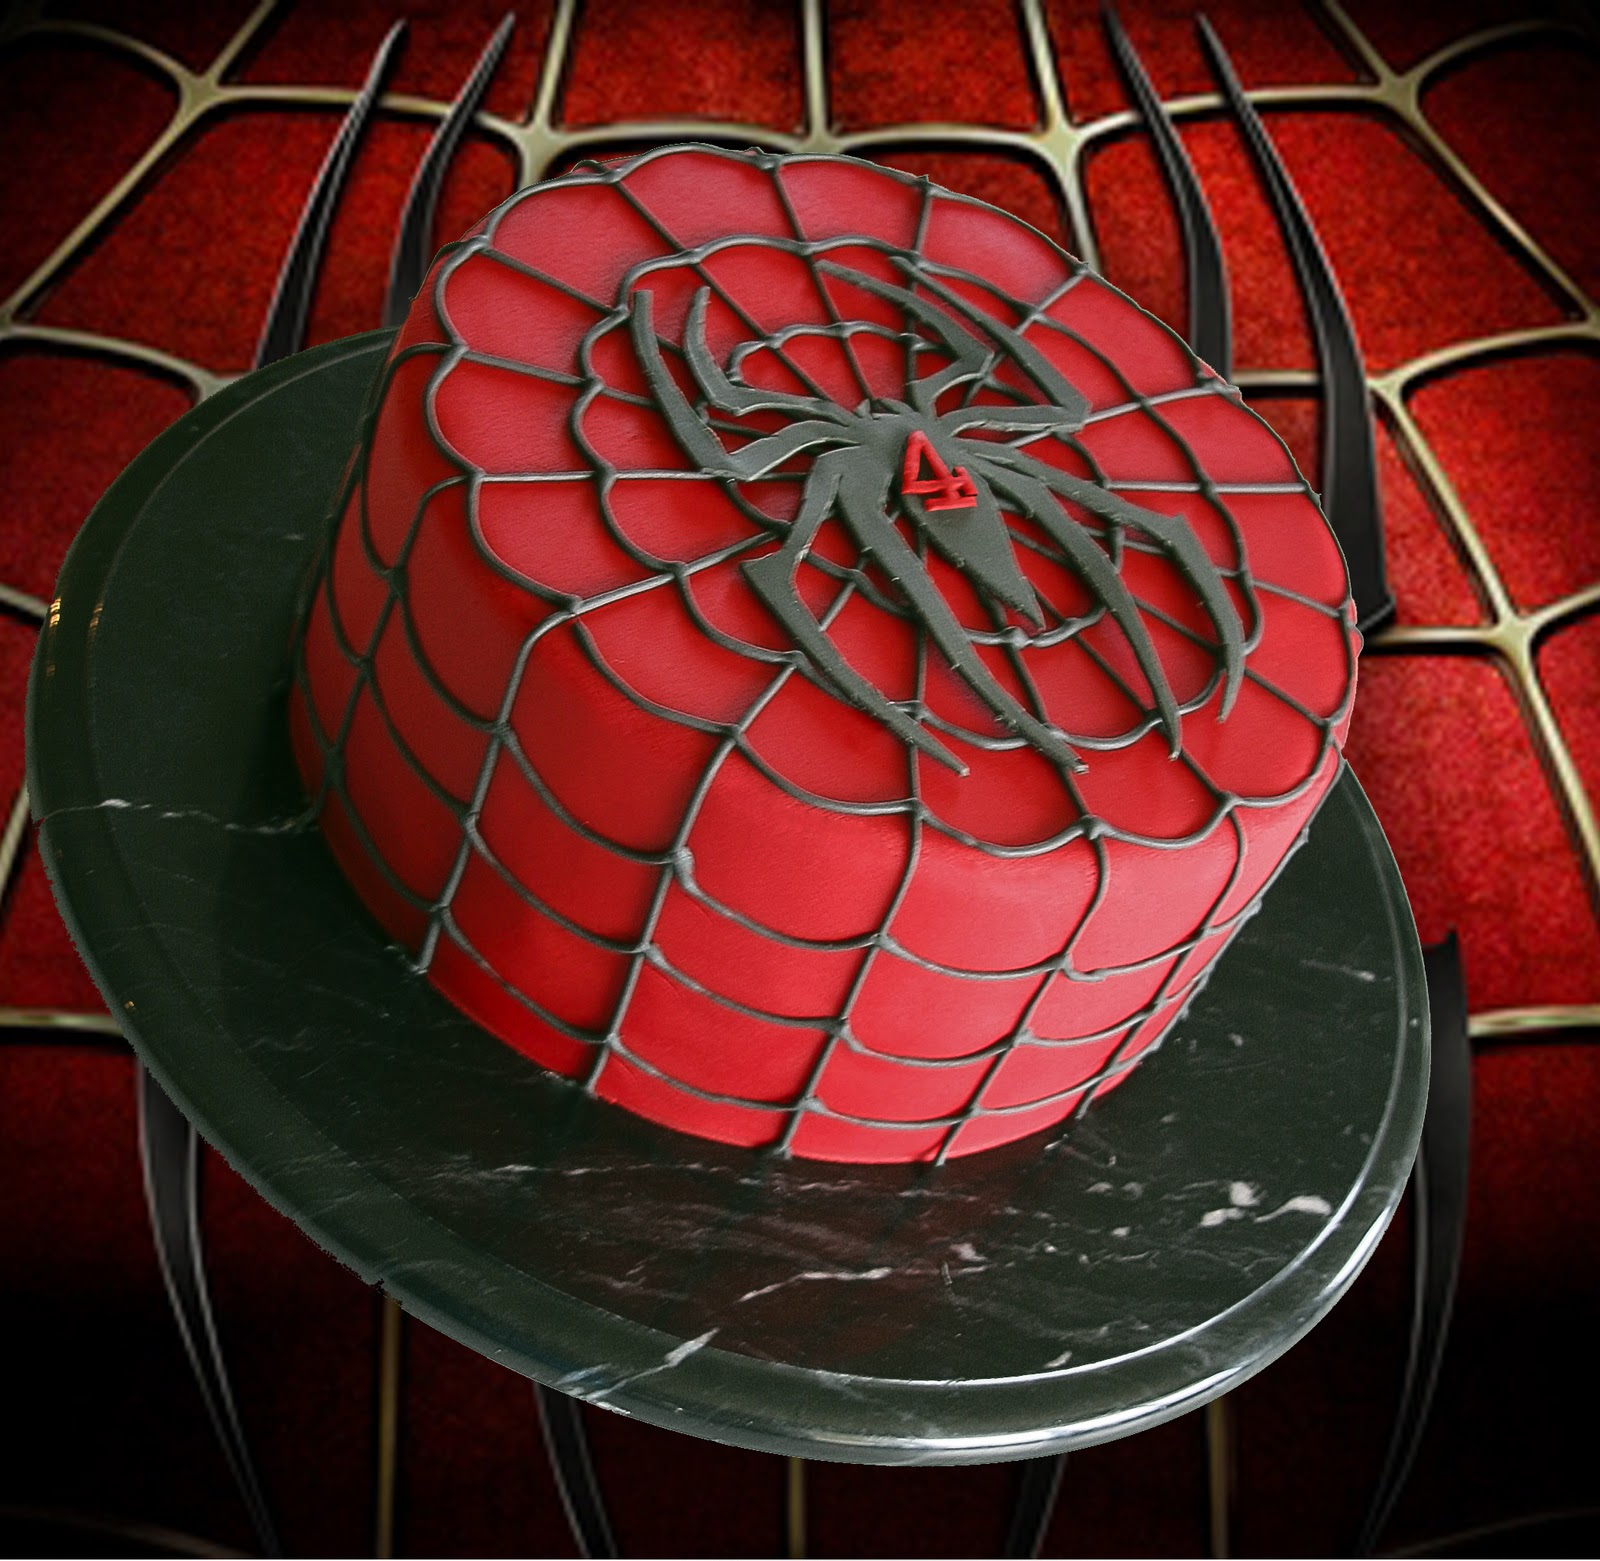 [Image: Spiderman+cake+3031+with+background.jpg]